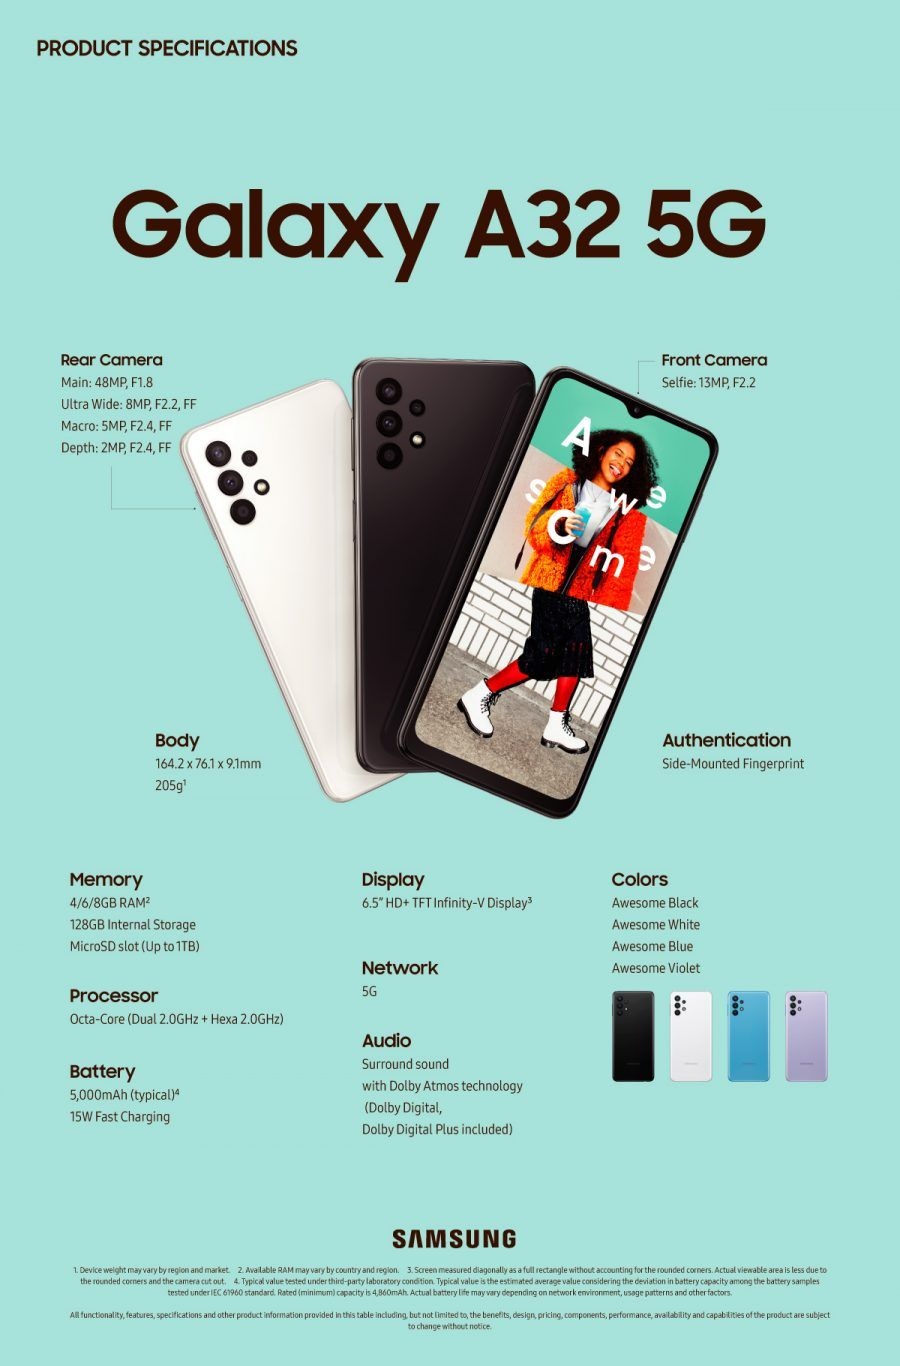 GalaxyA32 5G Spec Infographic FINAL 5g, mobile, Samsung, Samsung Galaxy A32 5G, smartphone